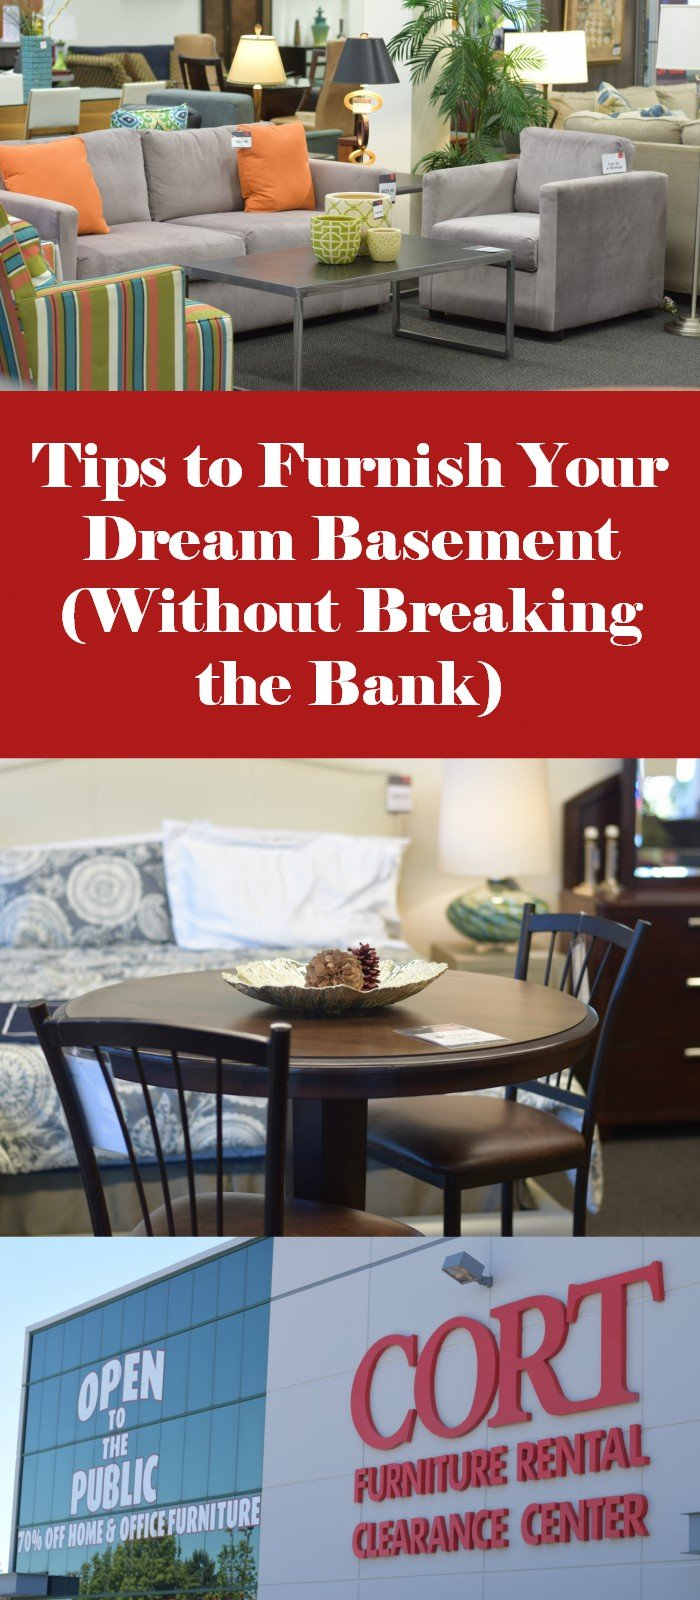 Tips to furnish your dream basement without breaking the bank. Once you refinish that space, here how you find and buy basement furniture without breaking the bank. Create an area you'll want to spend time in!